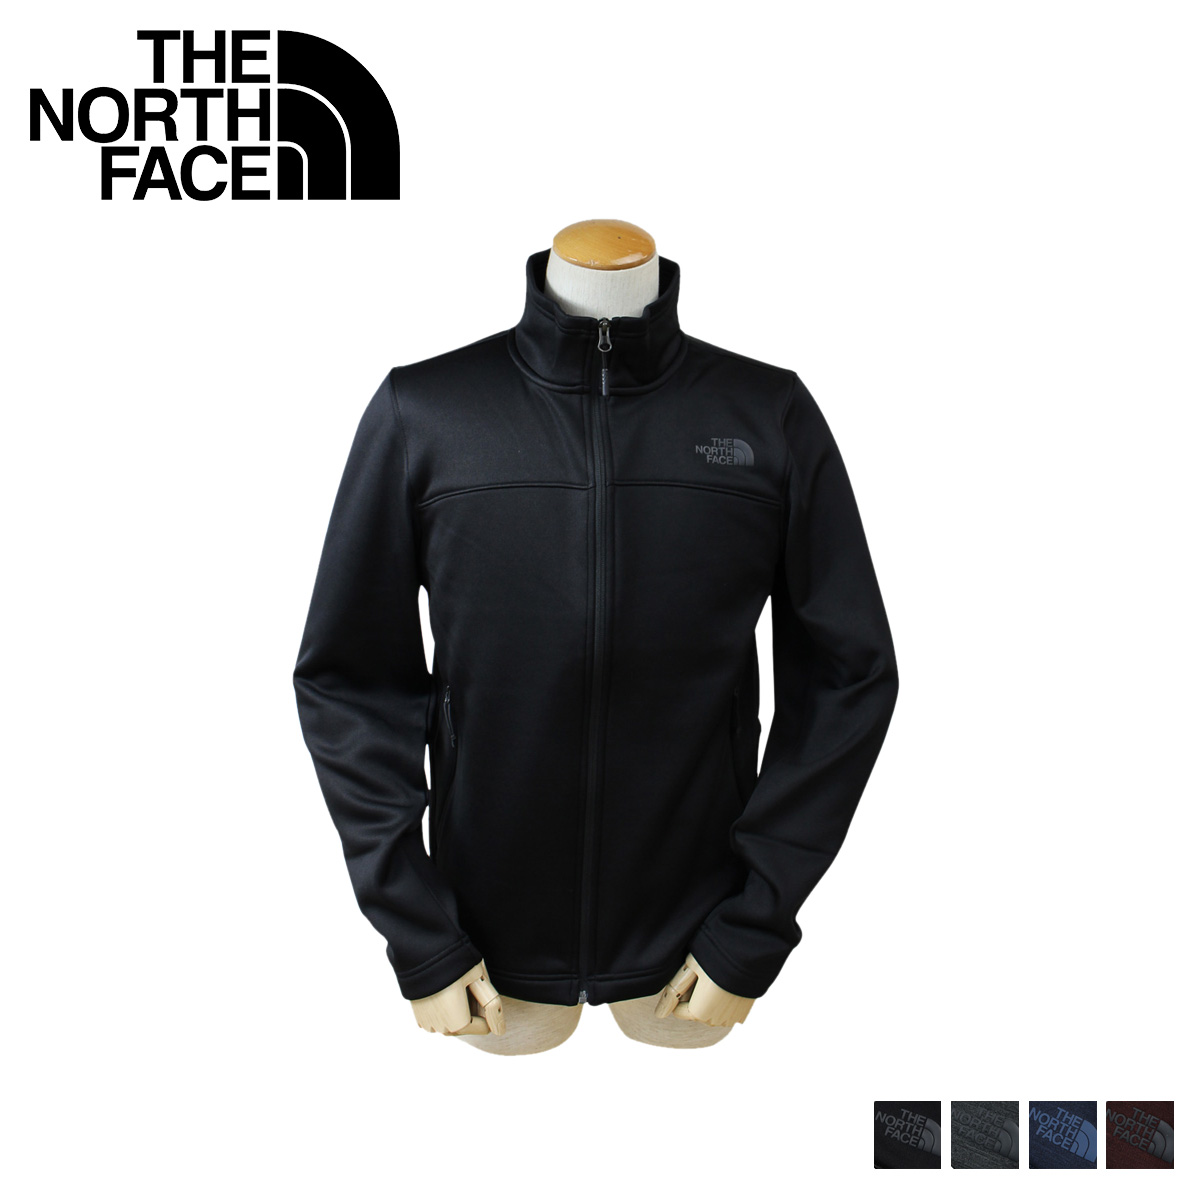 1c39dd2d14 ... promo code for mens schenley full zip nf0a2rdj mens fleece jacket north  face the north face